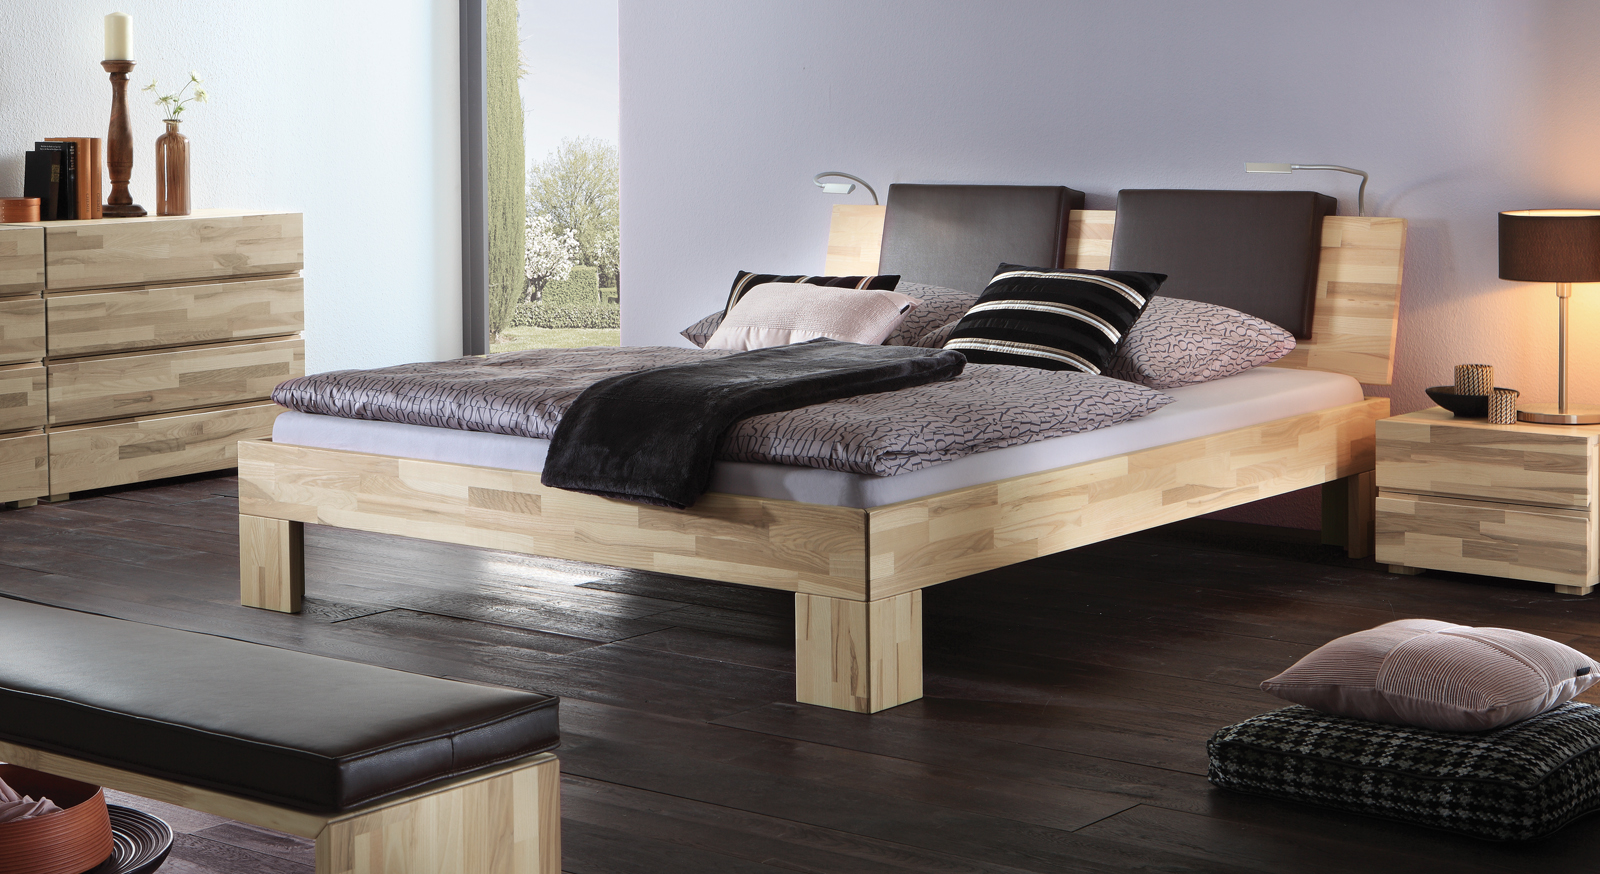 bett komplett mit lattenrost und matratzen bett el paso. Black Bedroom Furniture Sets. Home Design Ideas